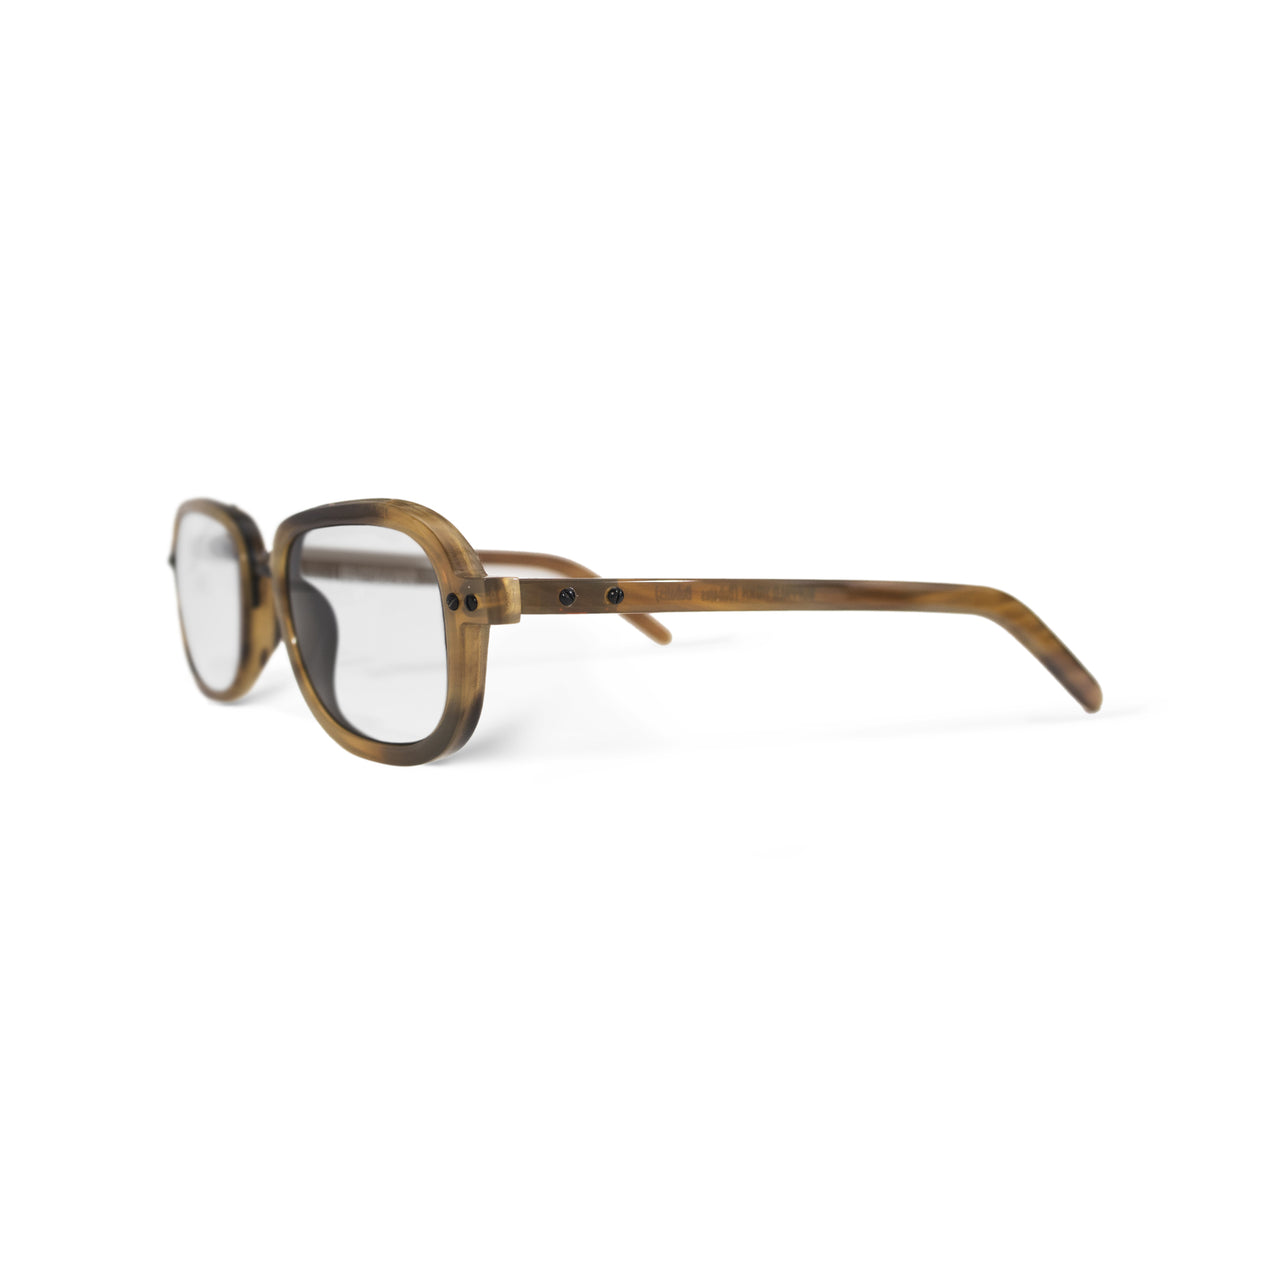 Horn. Blonde. Clear Lens. - BLYSZAK eyewear eyewear - eyewear, optical, sunglasses